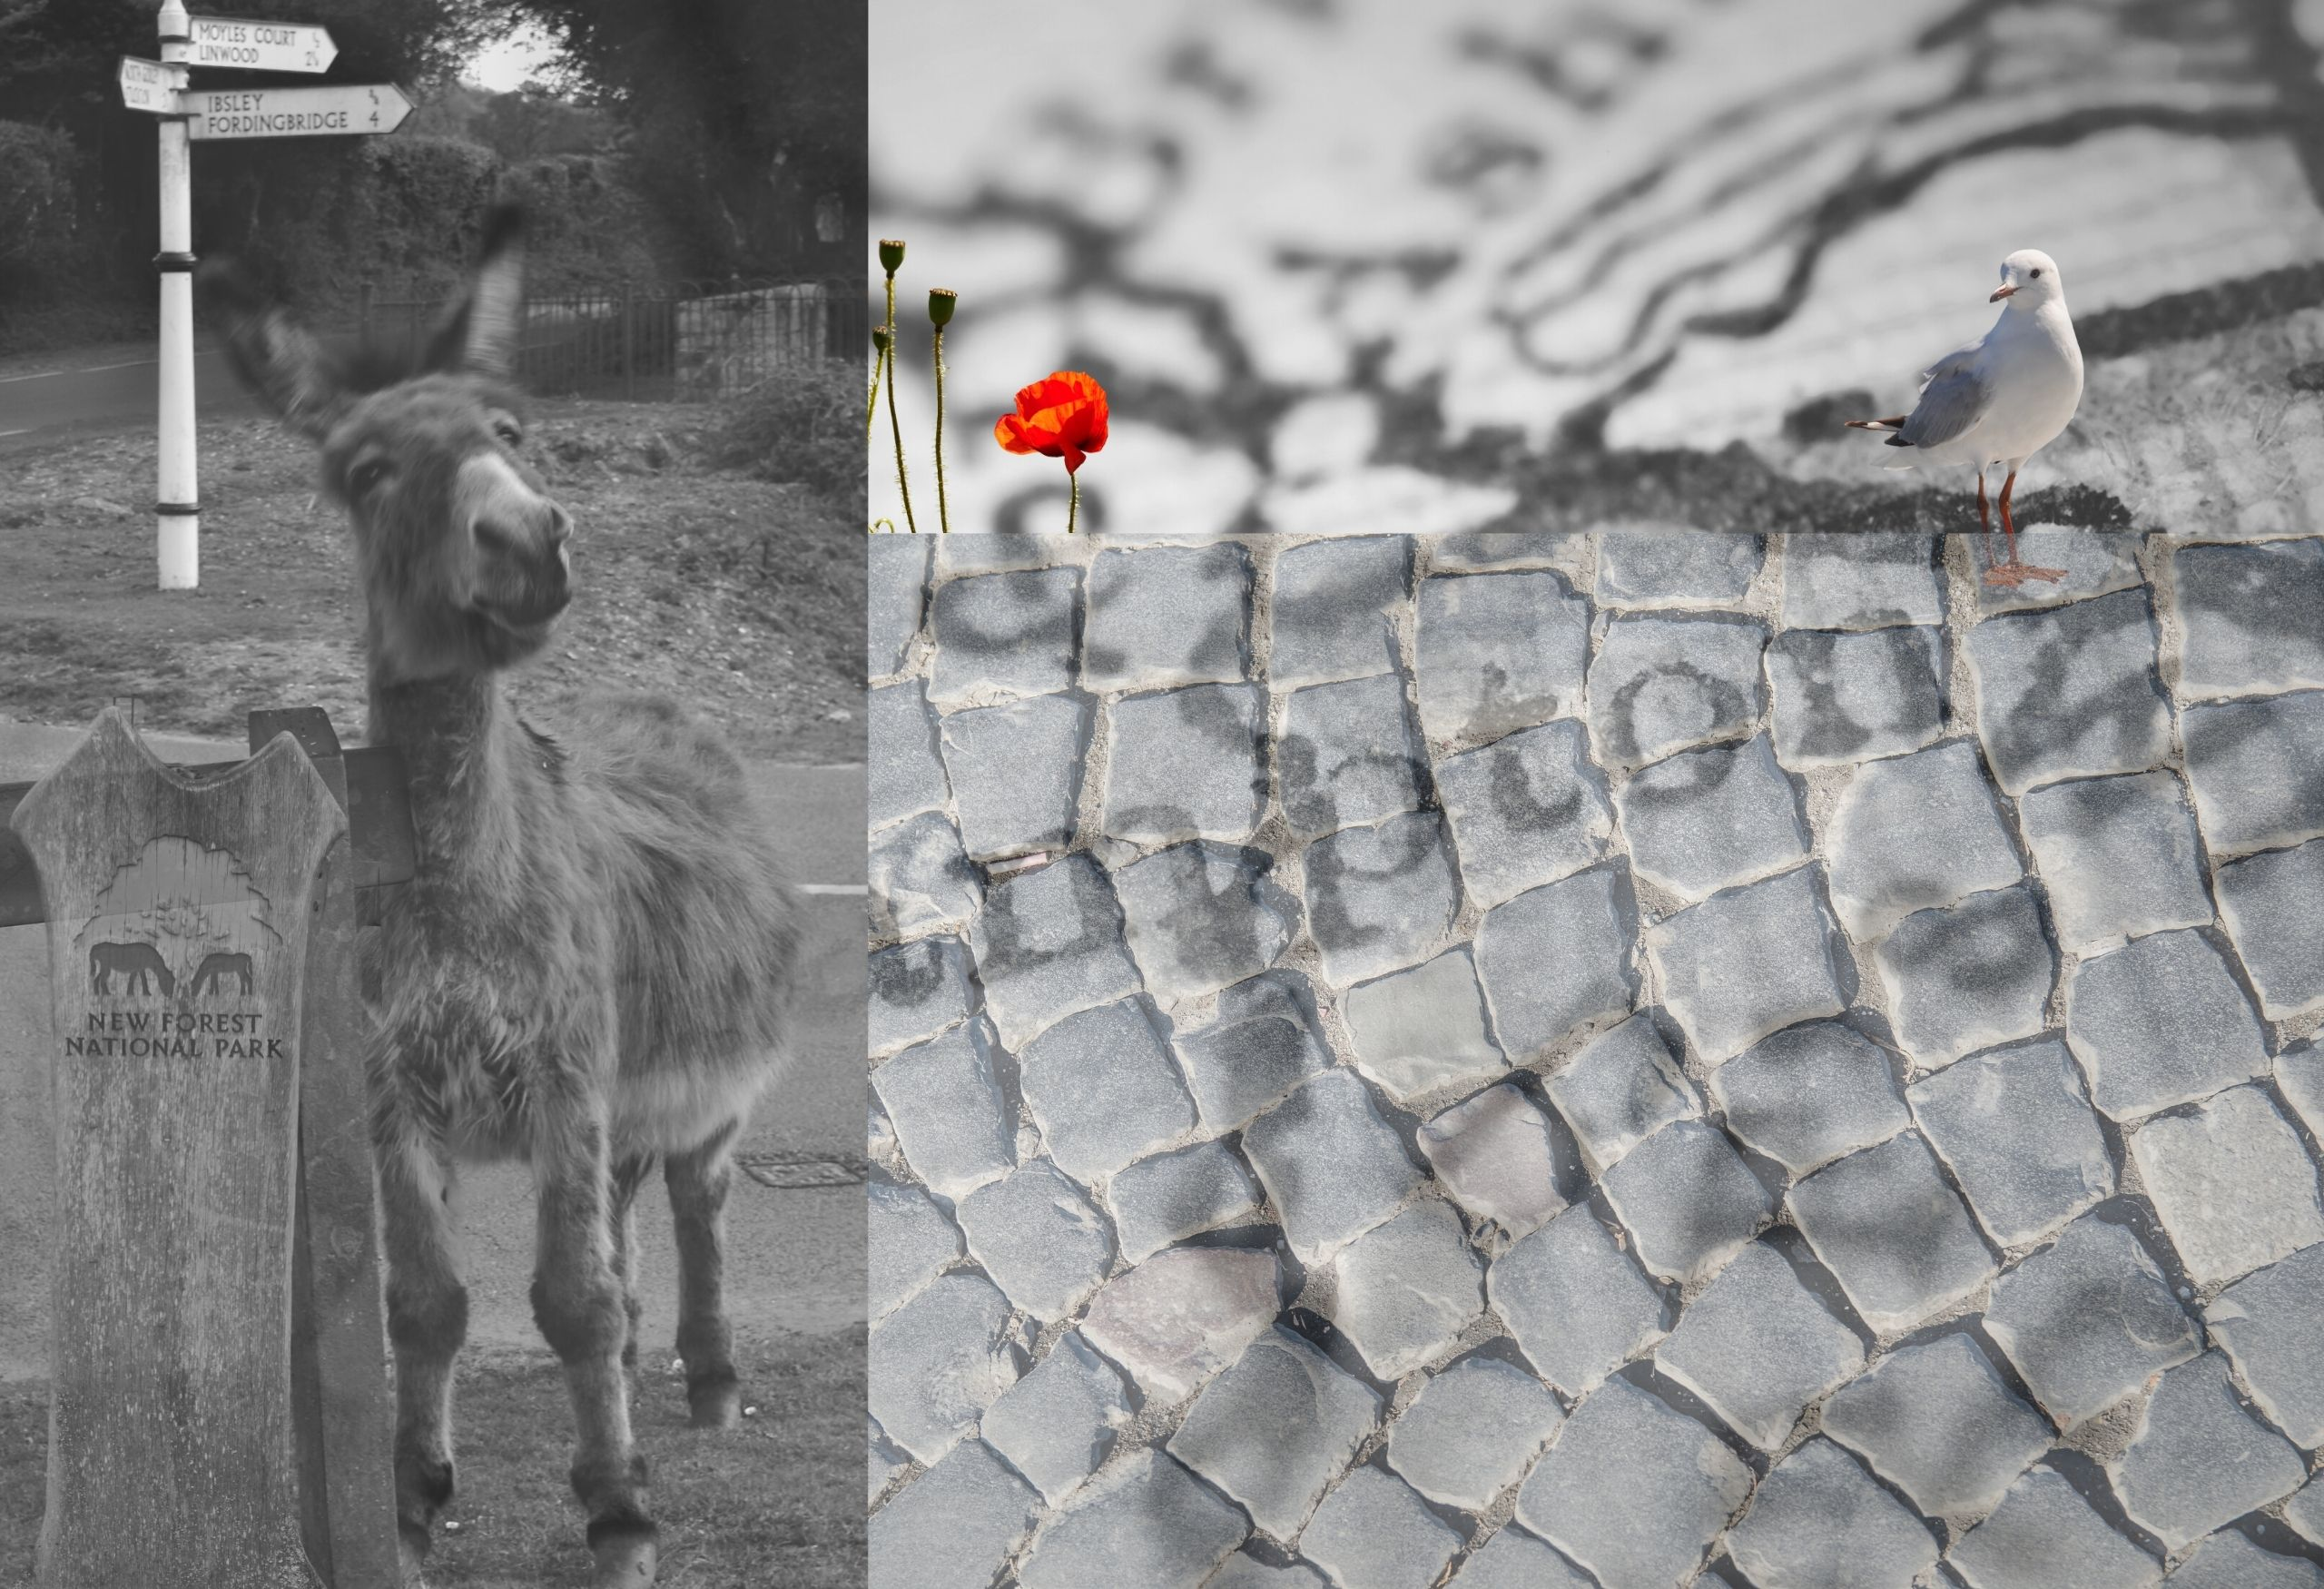 images of Britain cobbled streets New Forest donkeys and Poppies